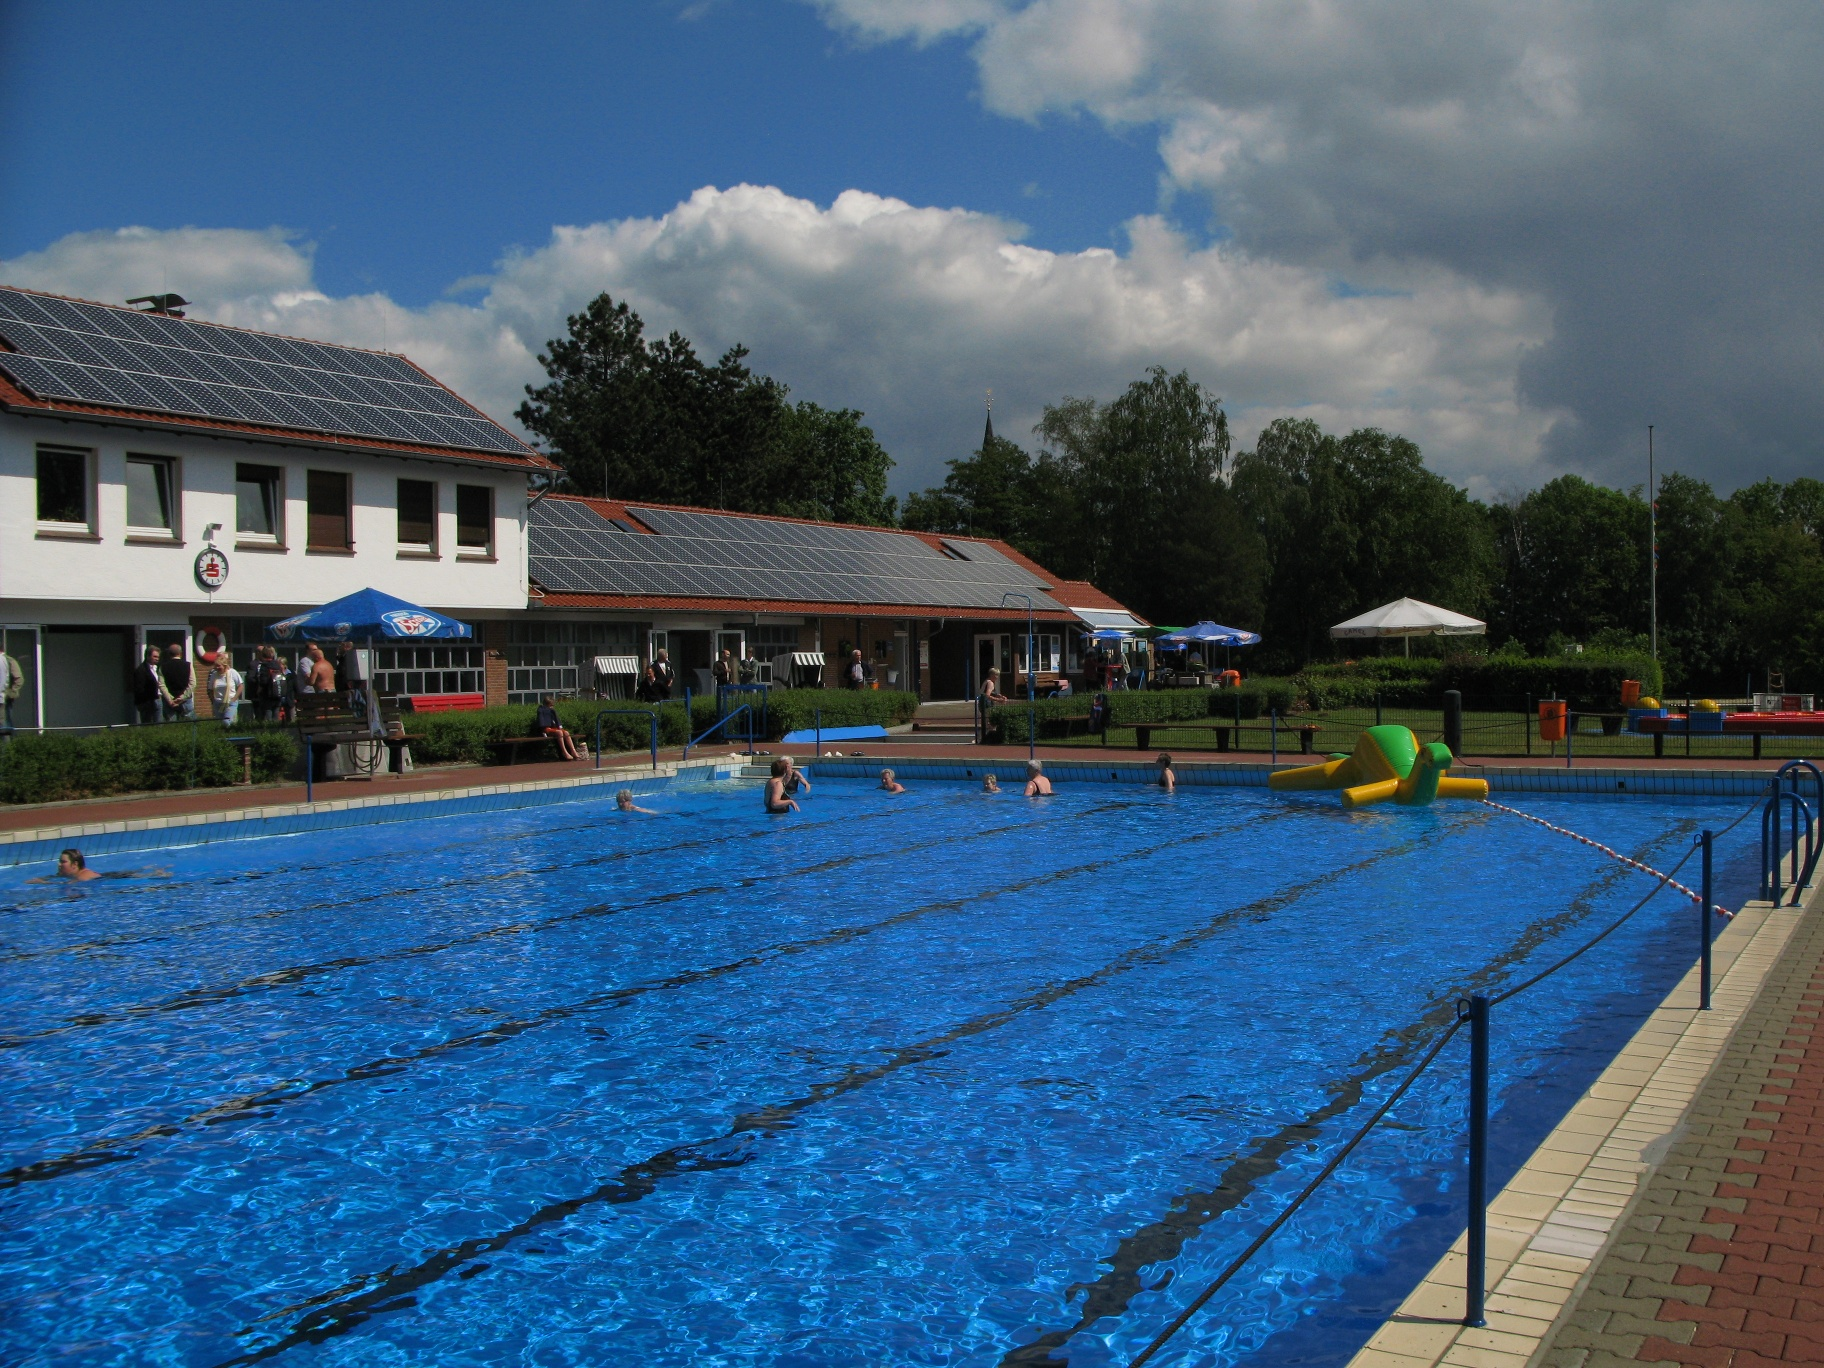 Freibad in Werther (Westf.)